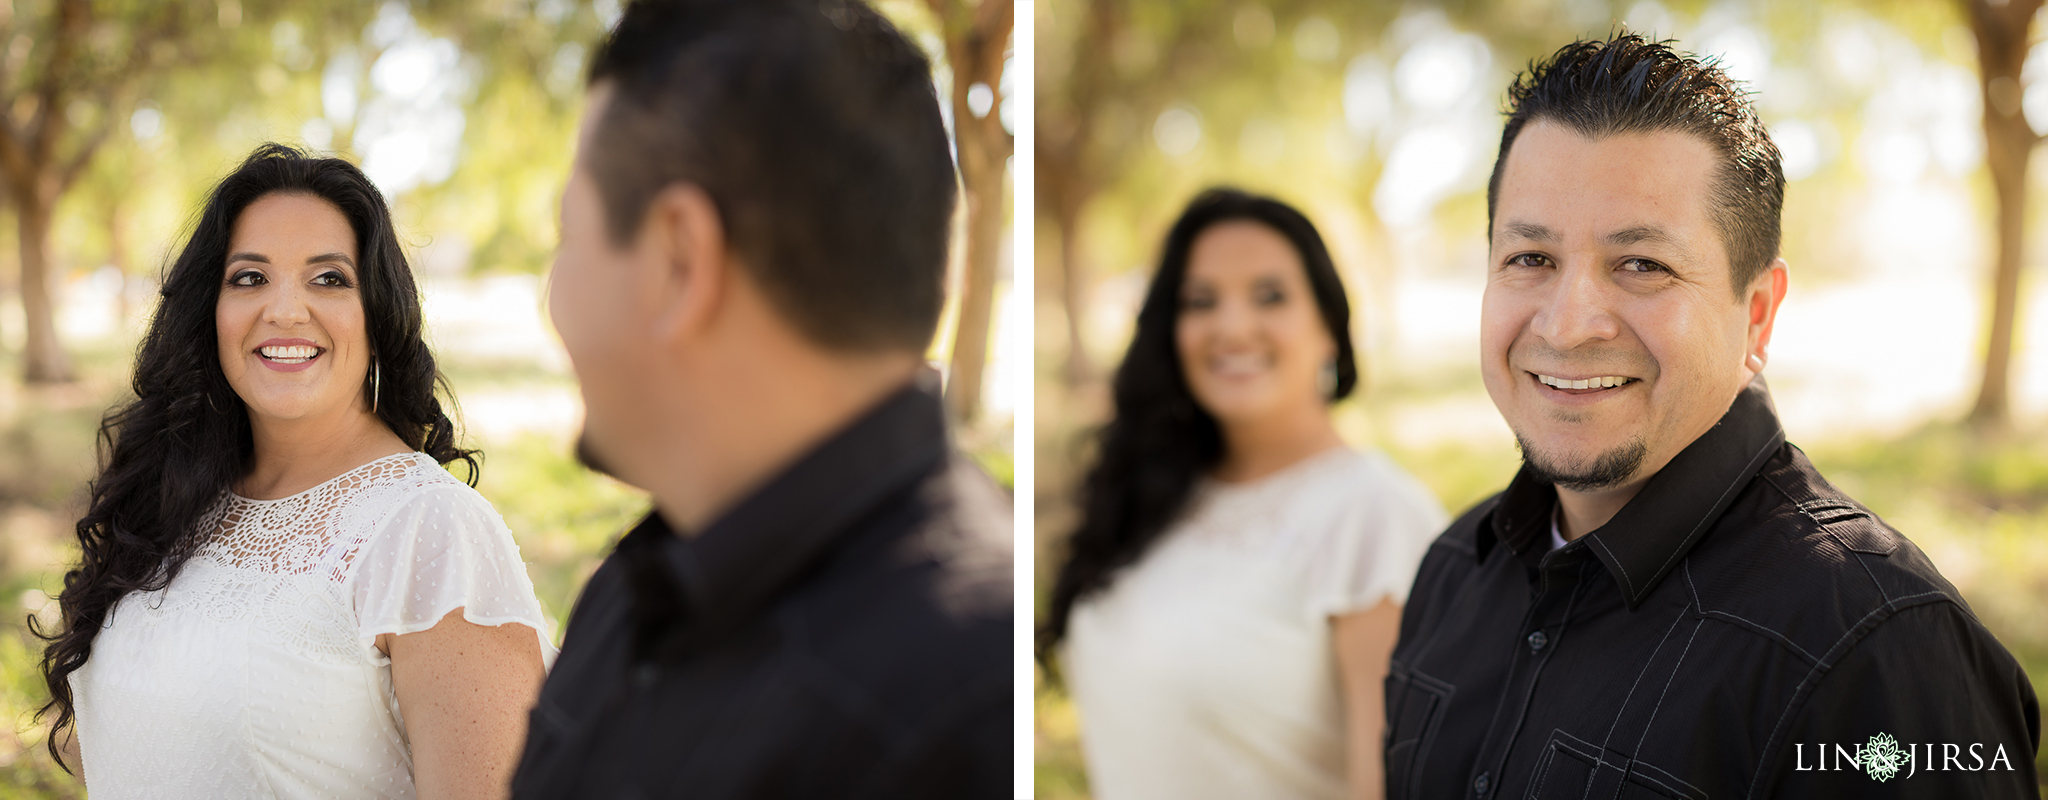 02-orange-county-quail-hill-laguna-beach-engagement-photography